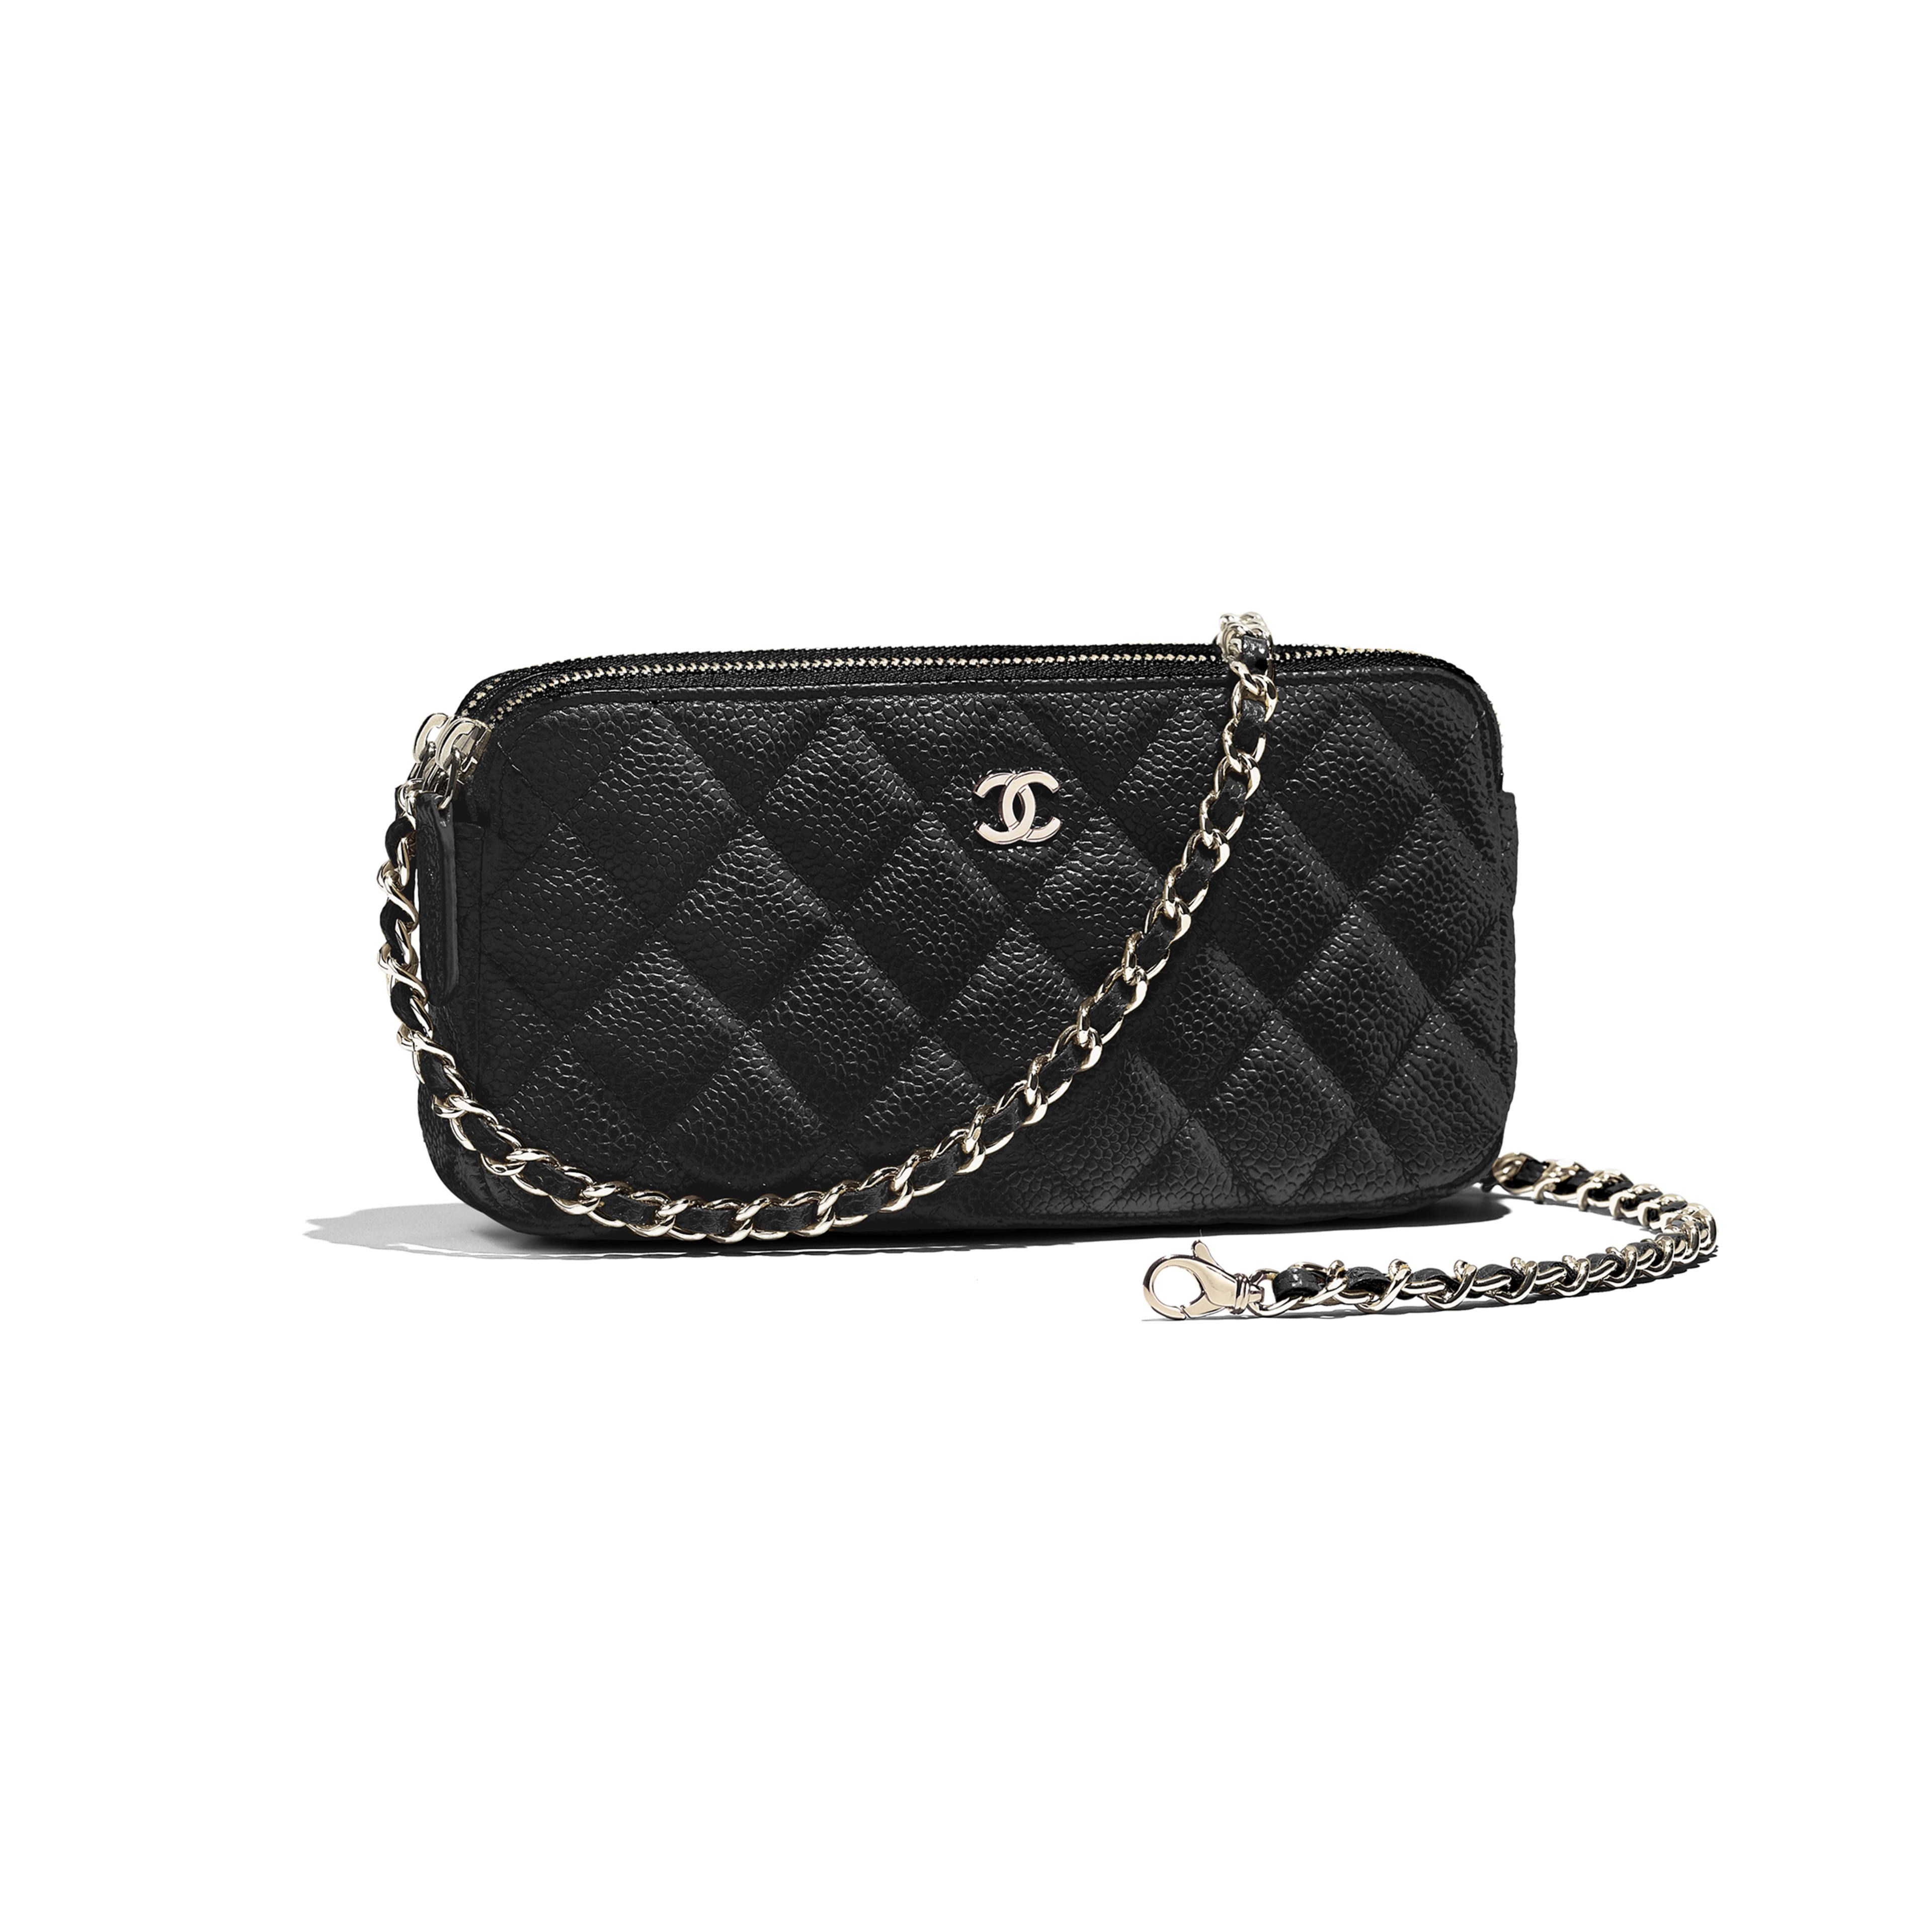 Classic Clutch with Chain - Black - Grained Calfskin & Gold-Tone Metal - Other view - see full sized version